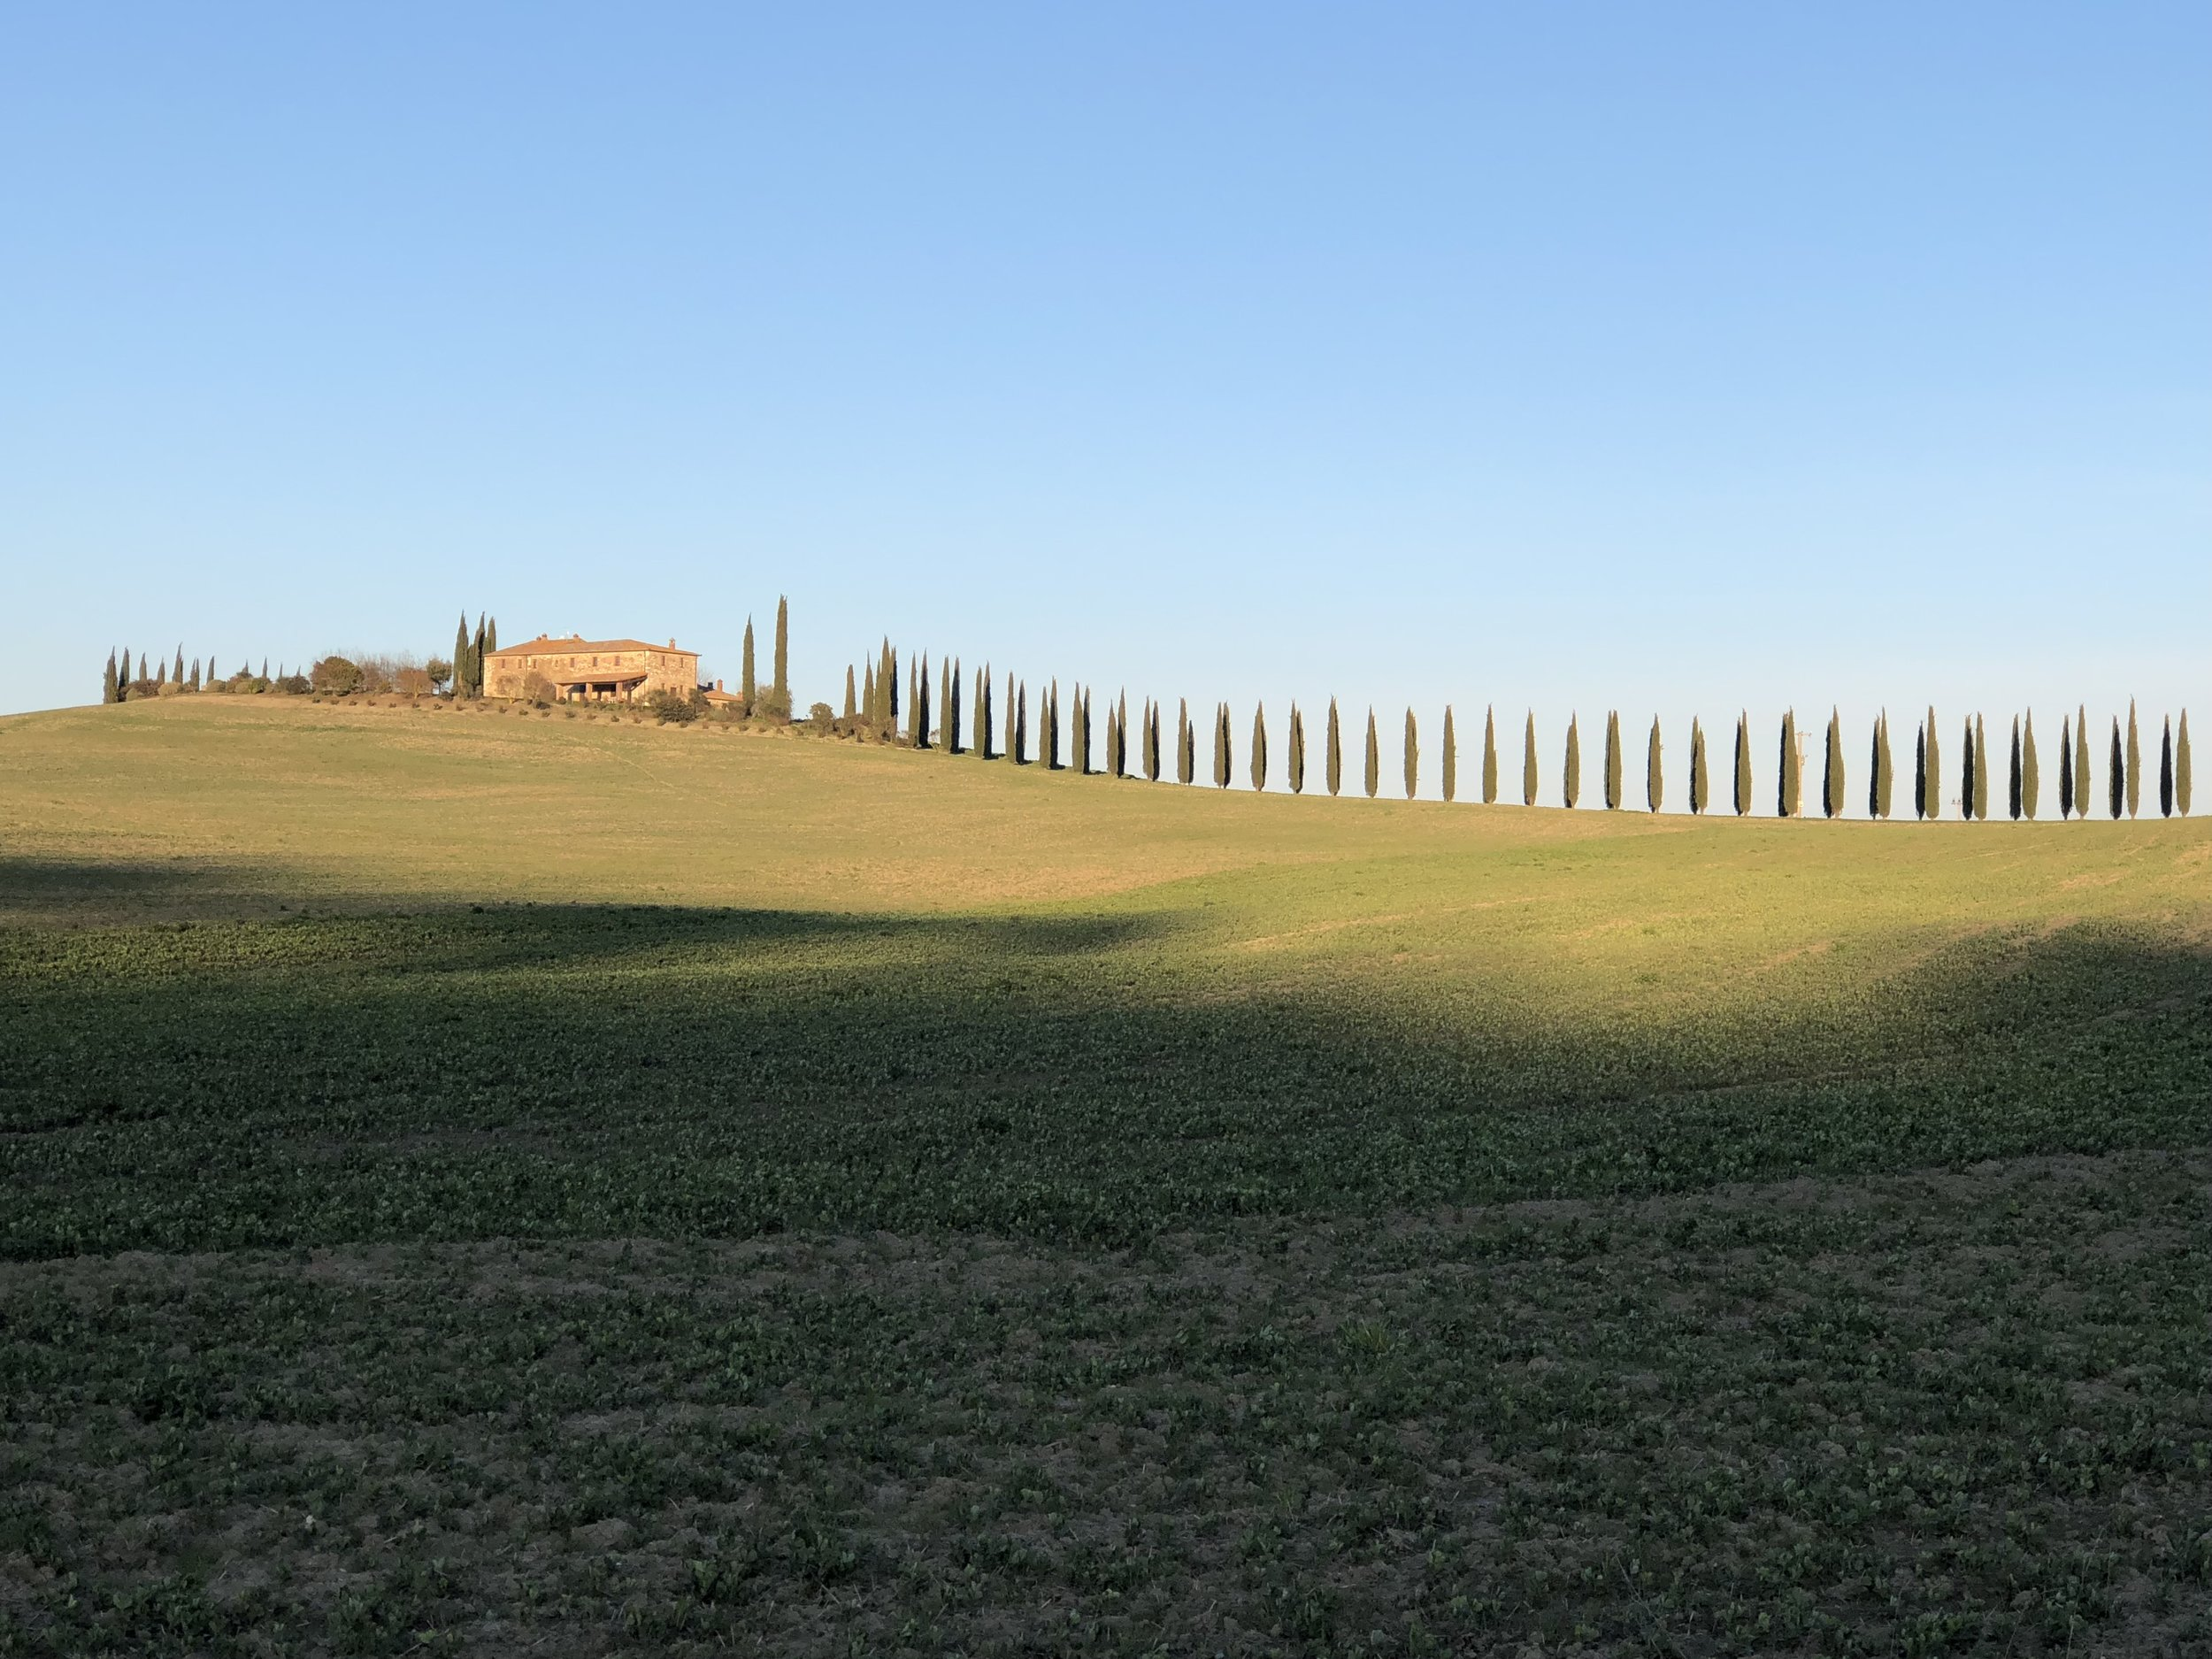 Snapshot from Val d'Orcia - famous for its rolling hills and cypress trees.  30 min drive from Chiusi.